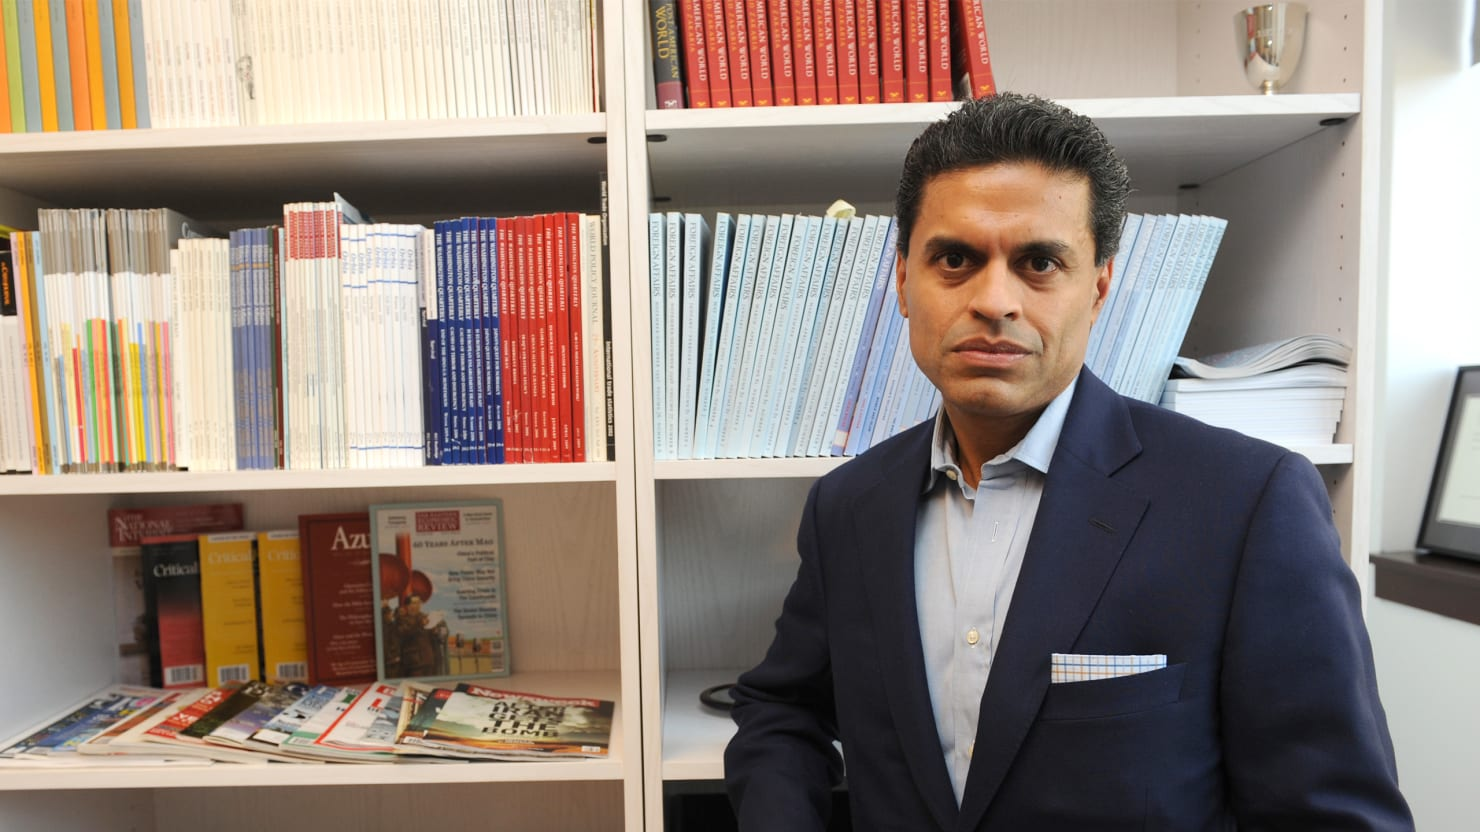 Foreign Affairs Auto >> Can Fareed Zakaria Survive A Plagiarism Firestorm?